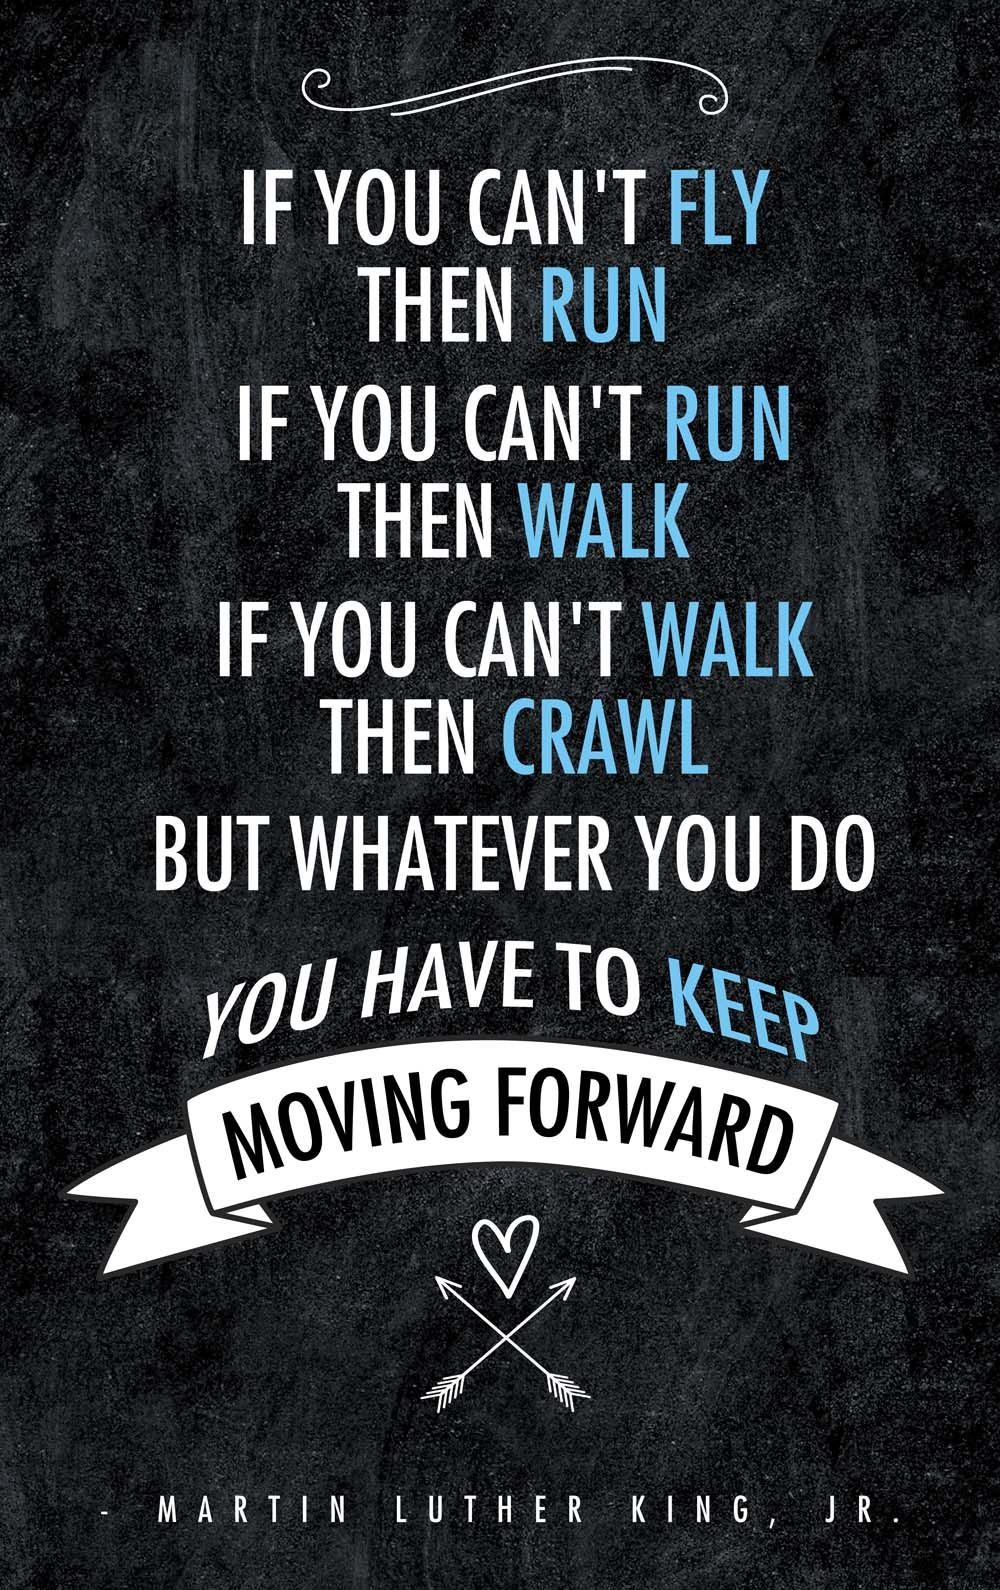 Move Forward Quotes Glamorous Keep Moving Forward #quote #martinlutherking  Inspiration Quotes